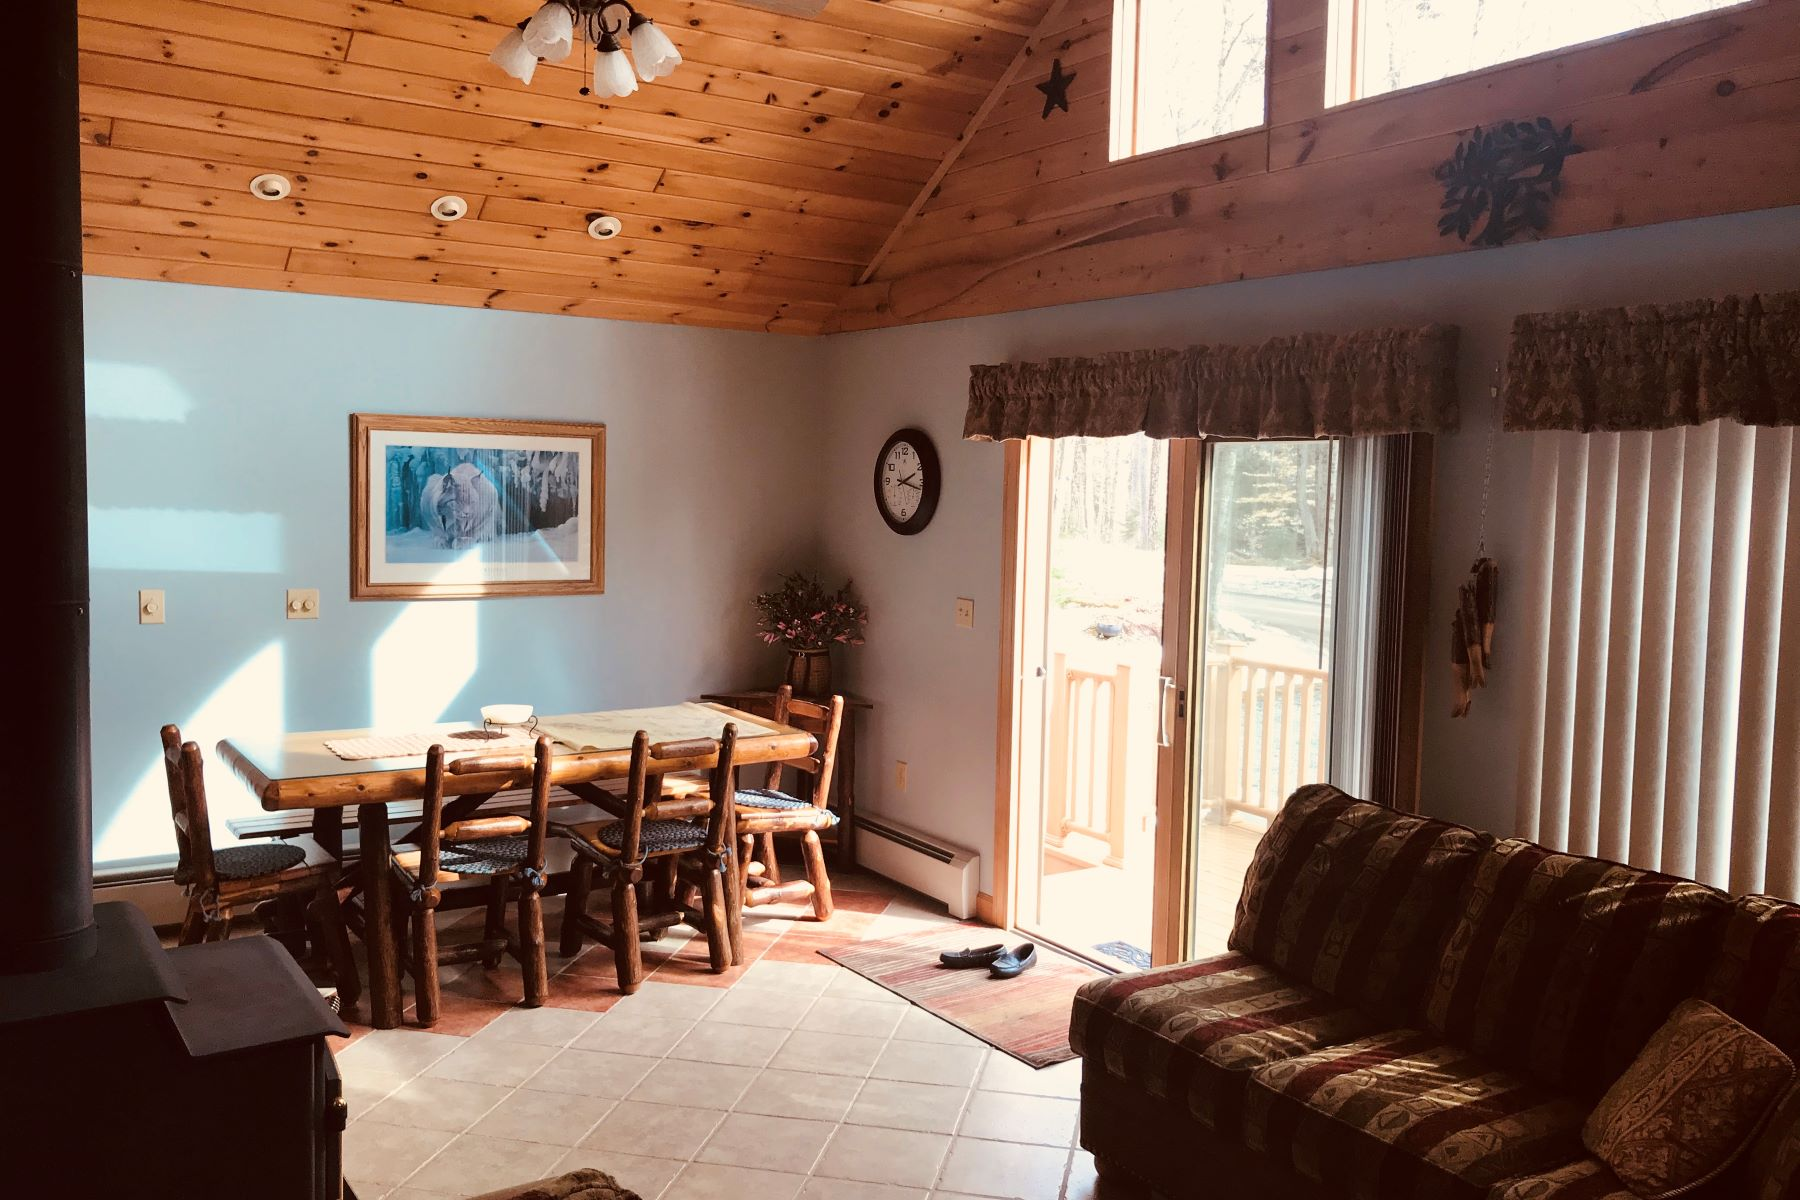 Additional photo for property listing at 4012 Lakeview Road 4012 Lakeview Road Otter Lake, New York 13338 United States